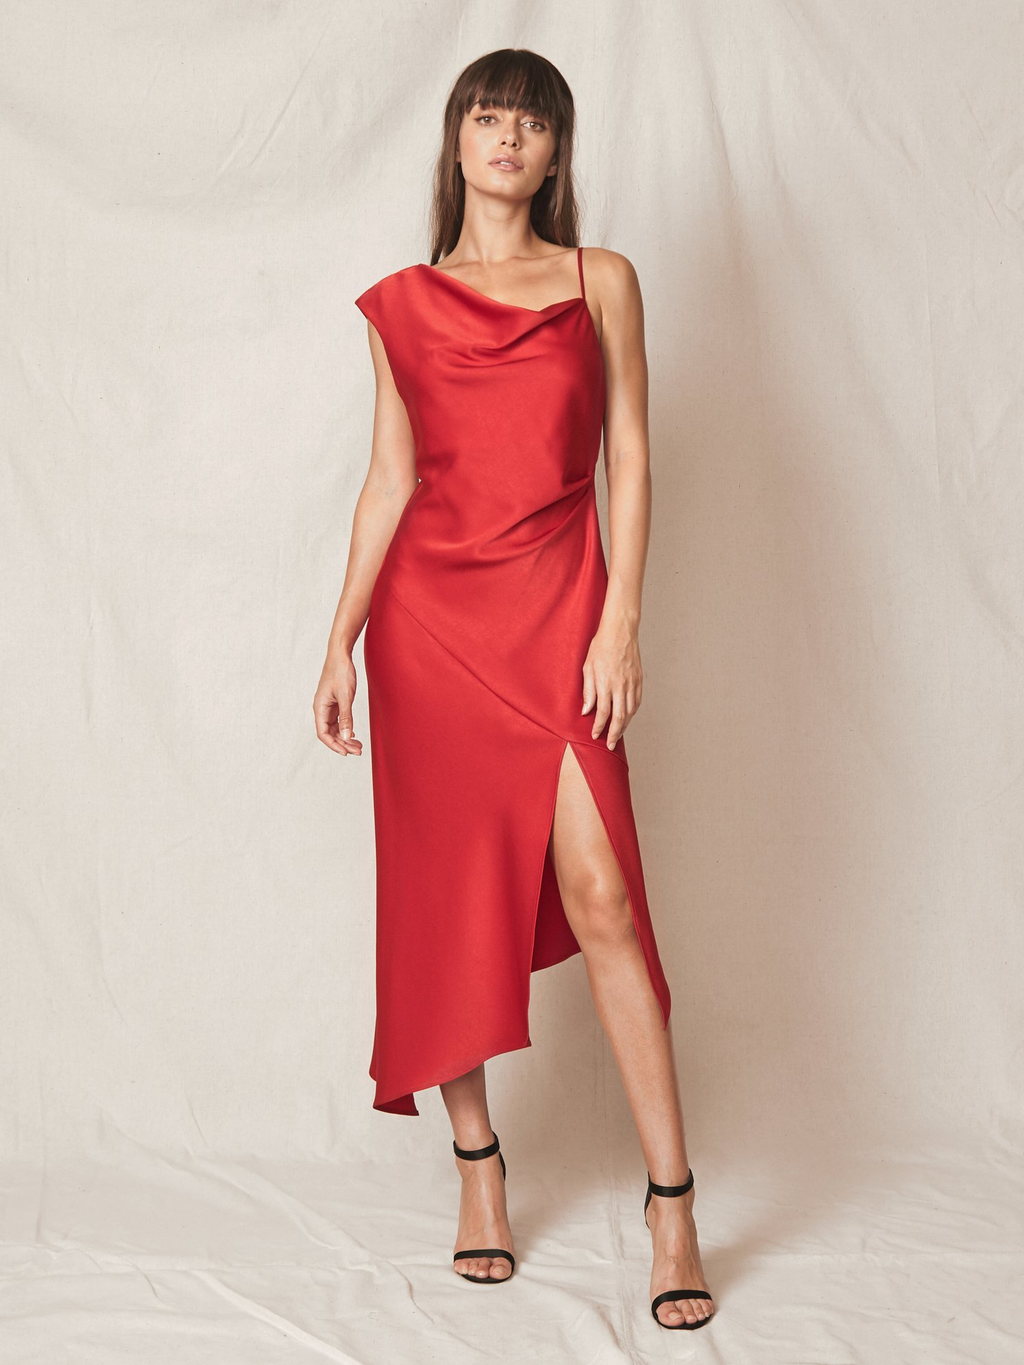 ALLEN SCHWARTZ Everly Asymmetric Gown Red. Robe de satin longue rouge